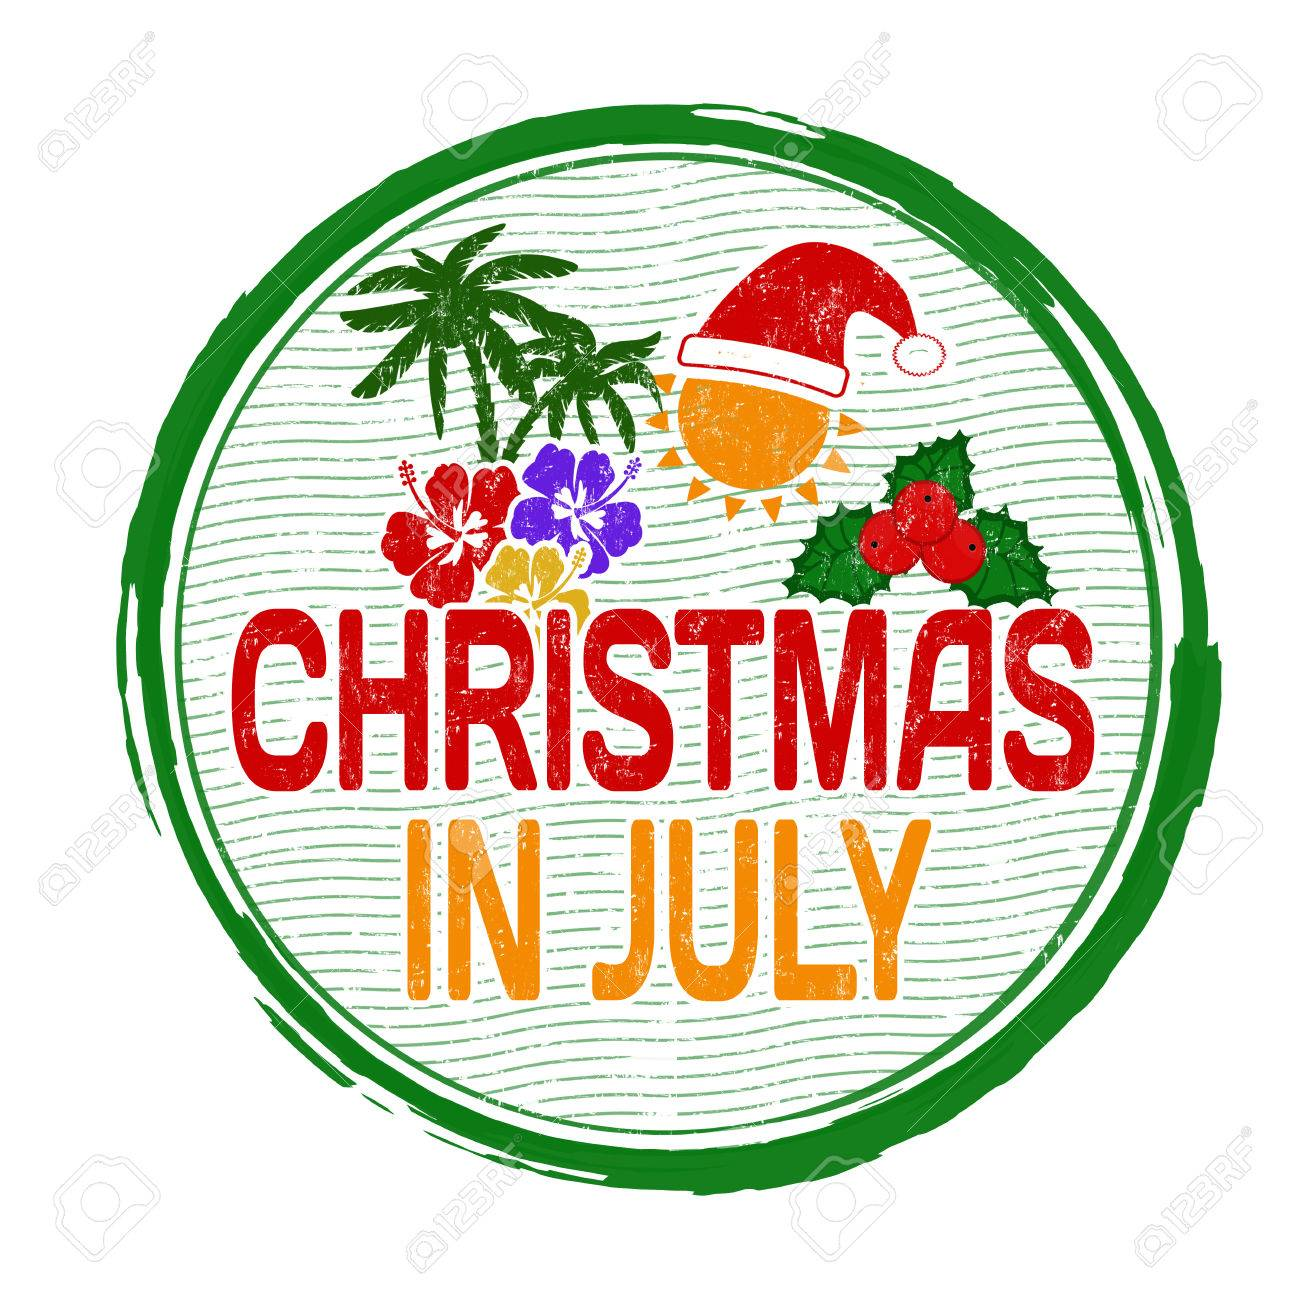 Christmas in july grunge rubber stamp on white, vector illustration.